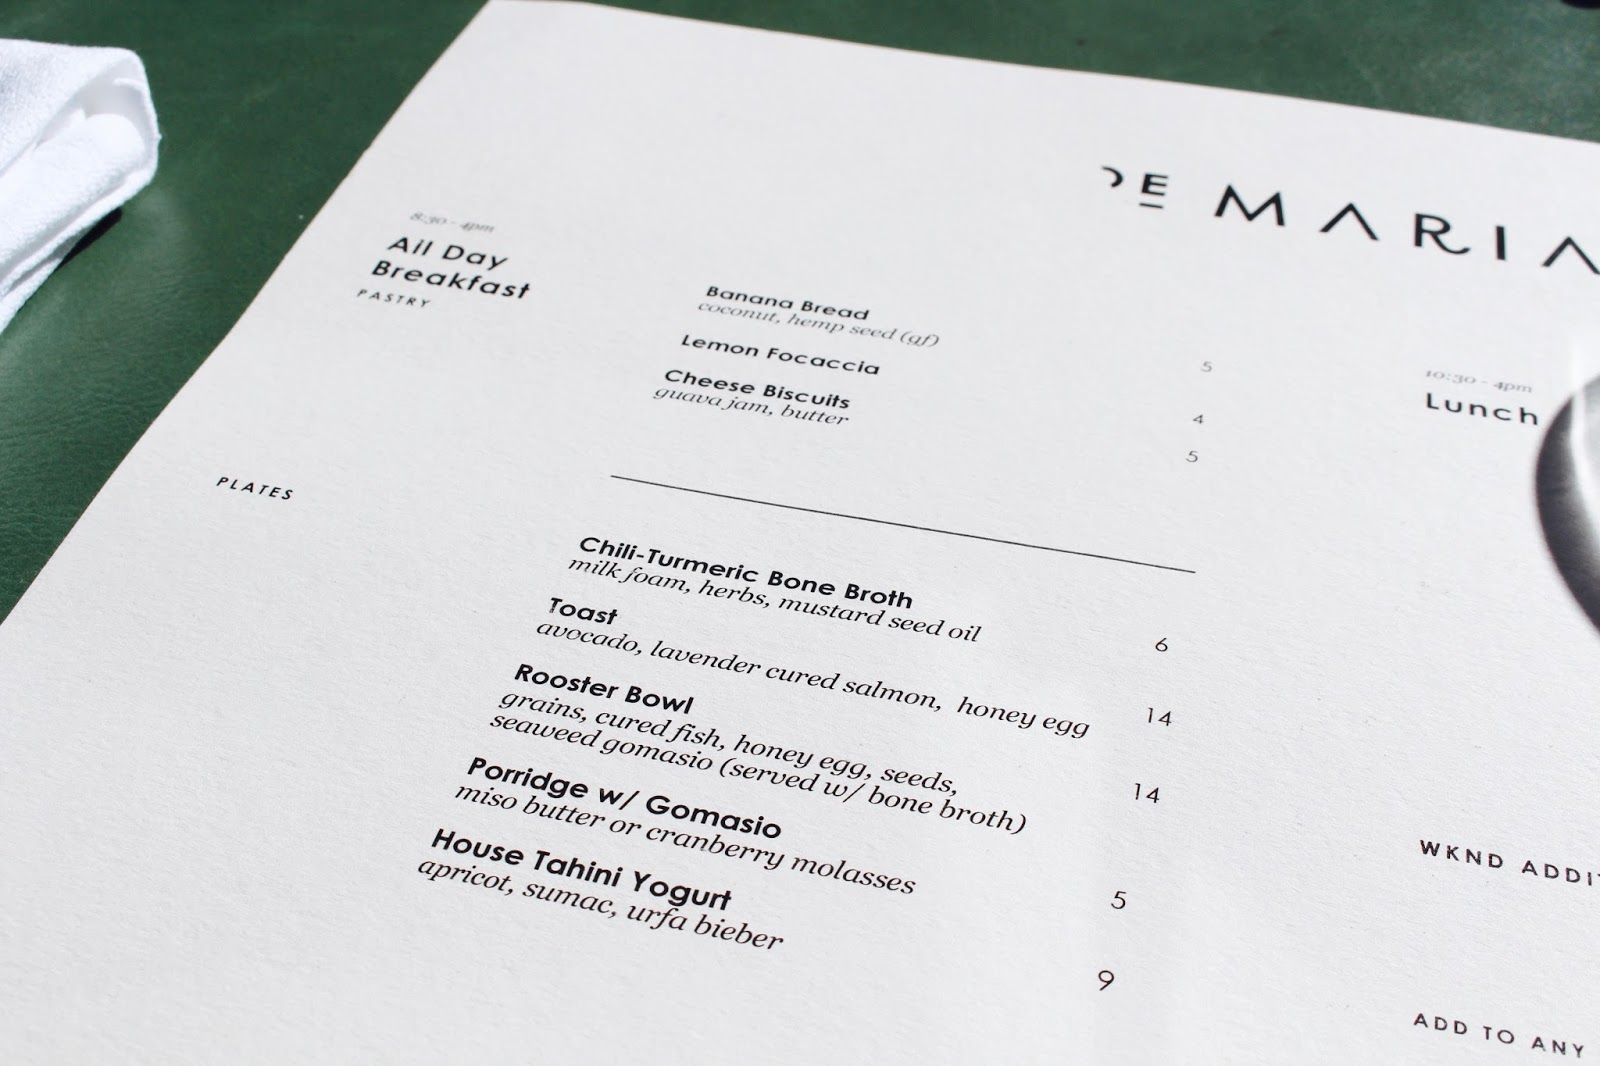 De Maria NYC Menu | New York Kenmare St